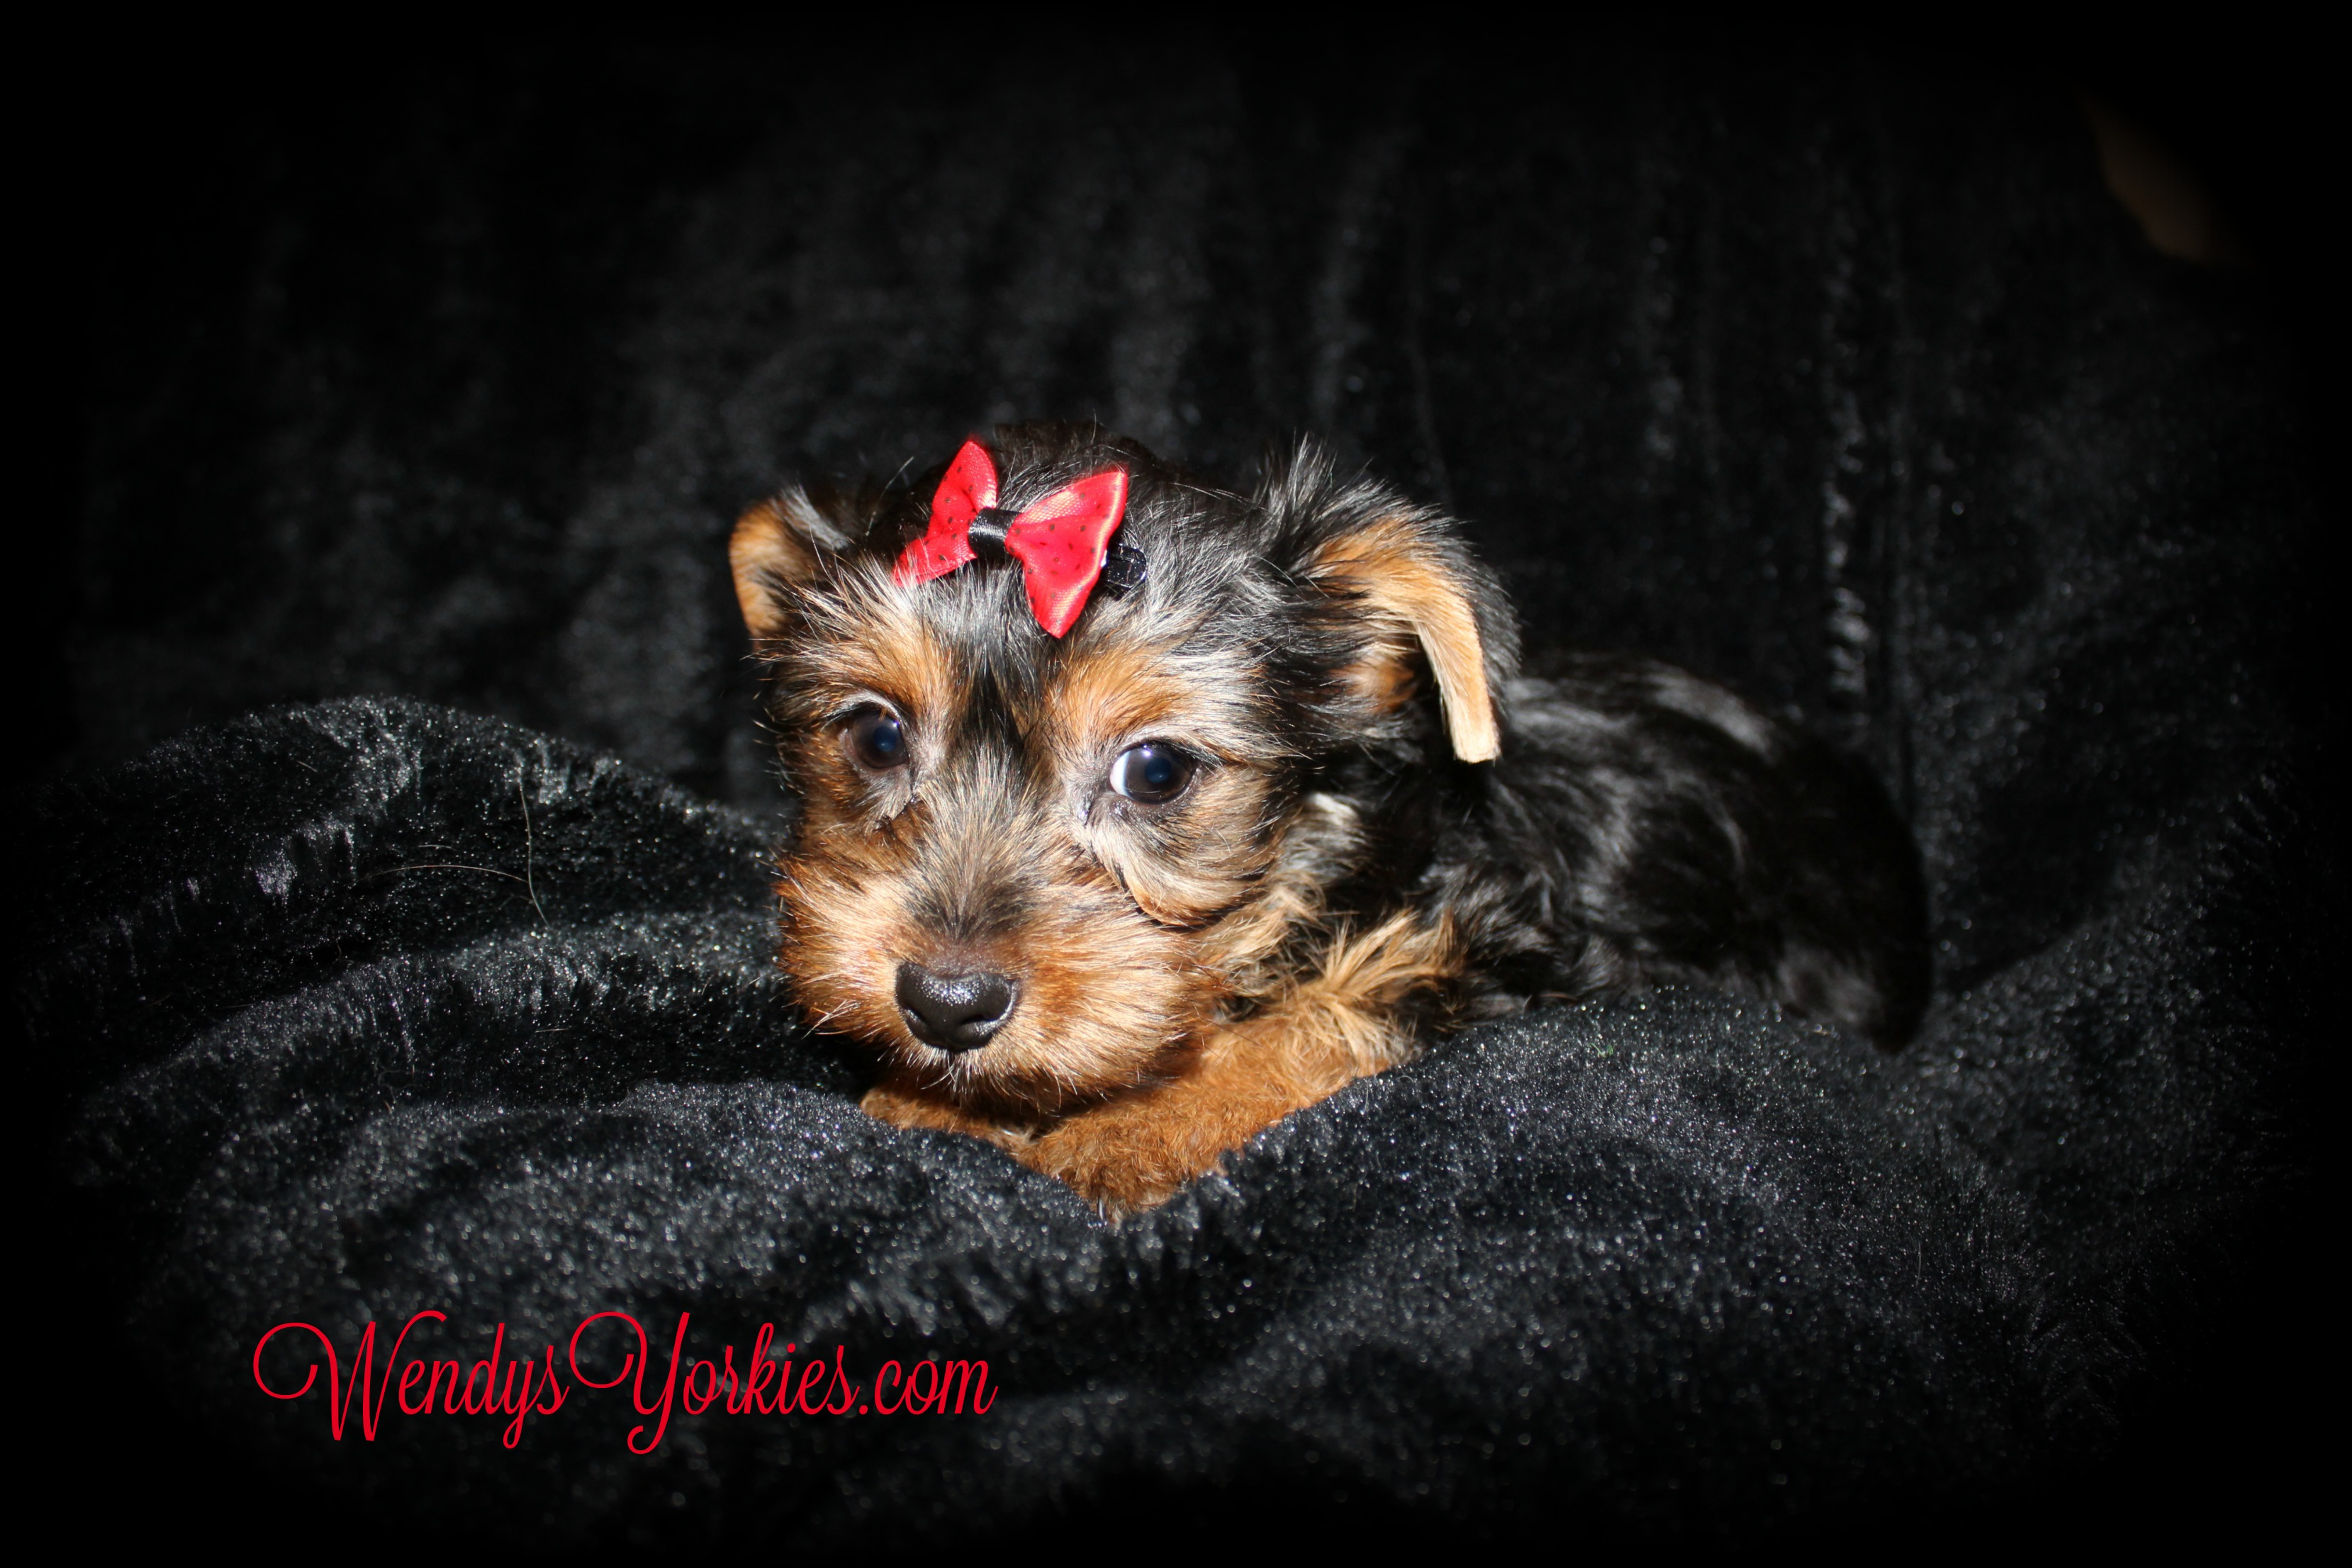 Yorkie puppy for sale, WEndysYorkies, Anna m2